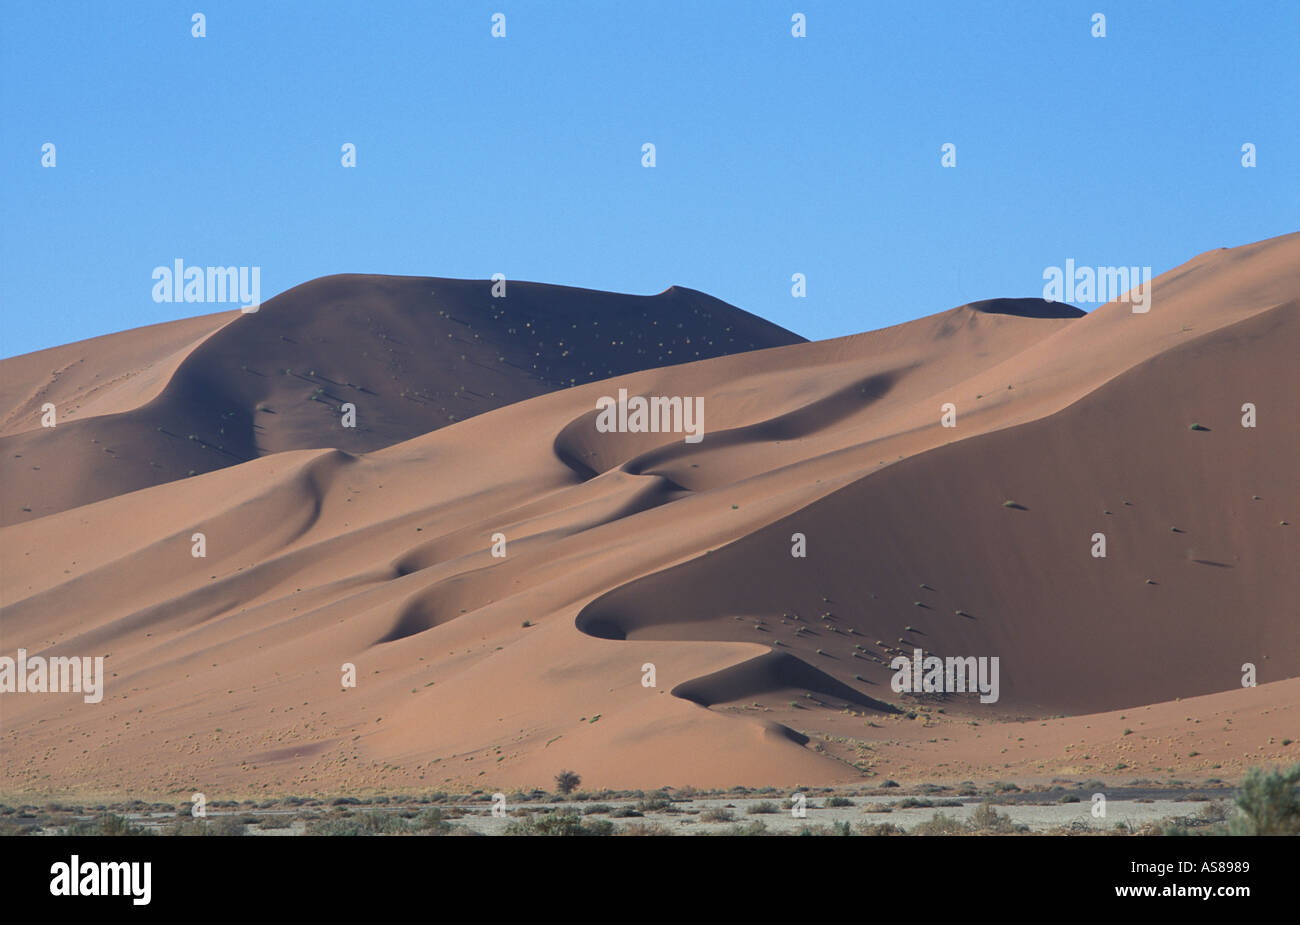 Sand dunes at sunrise Namib Naukluft National Park en route to Dune 45 and Sossusvlei - Stock Image